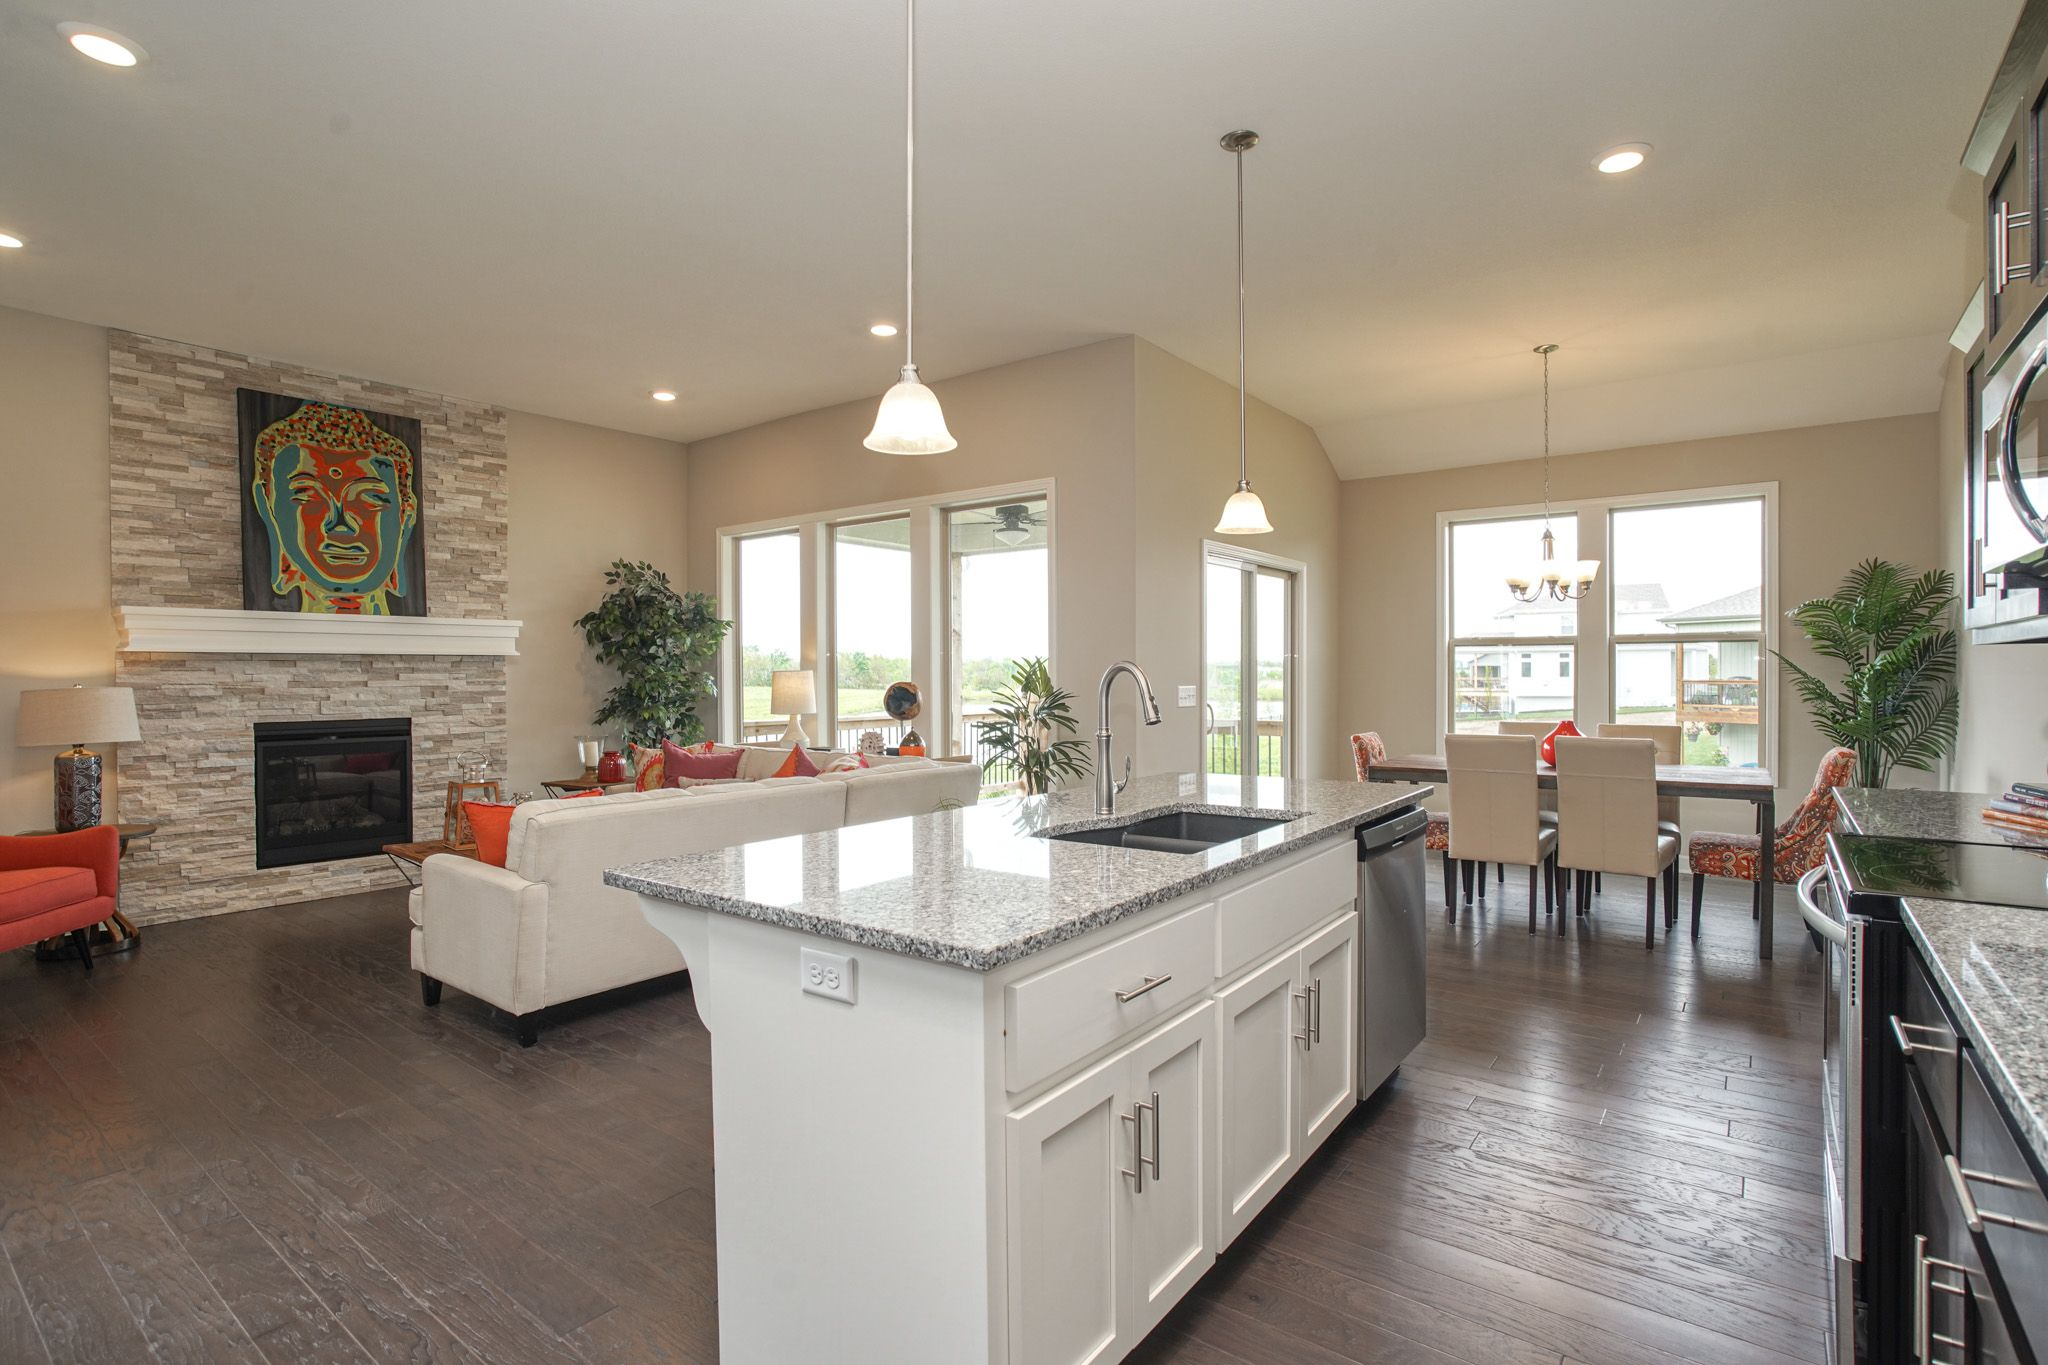 Kitchen featured in the Waterford - IA By Summit Homes in Des Moines, IA